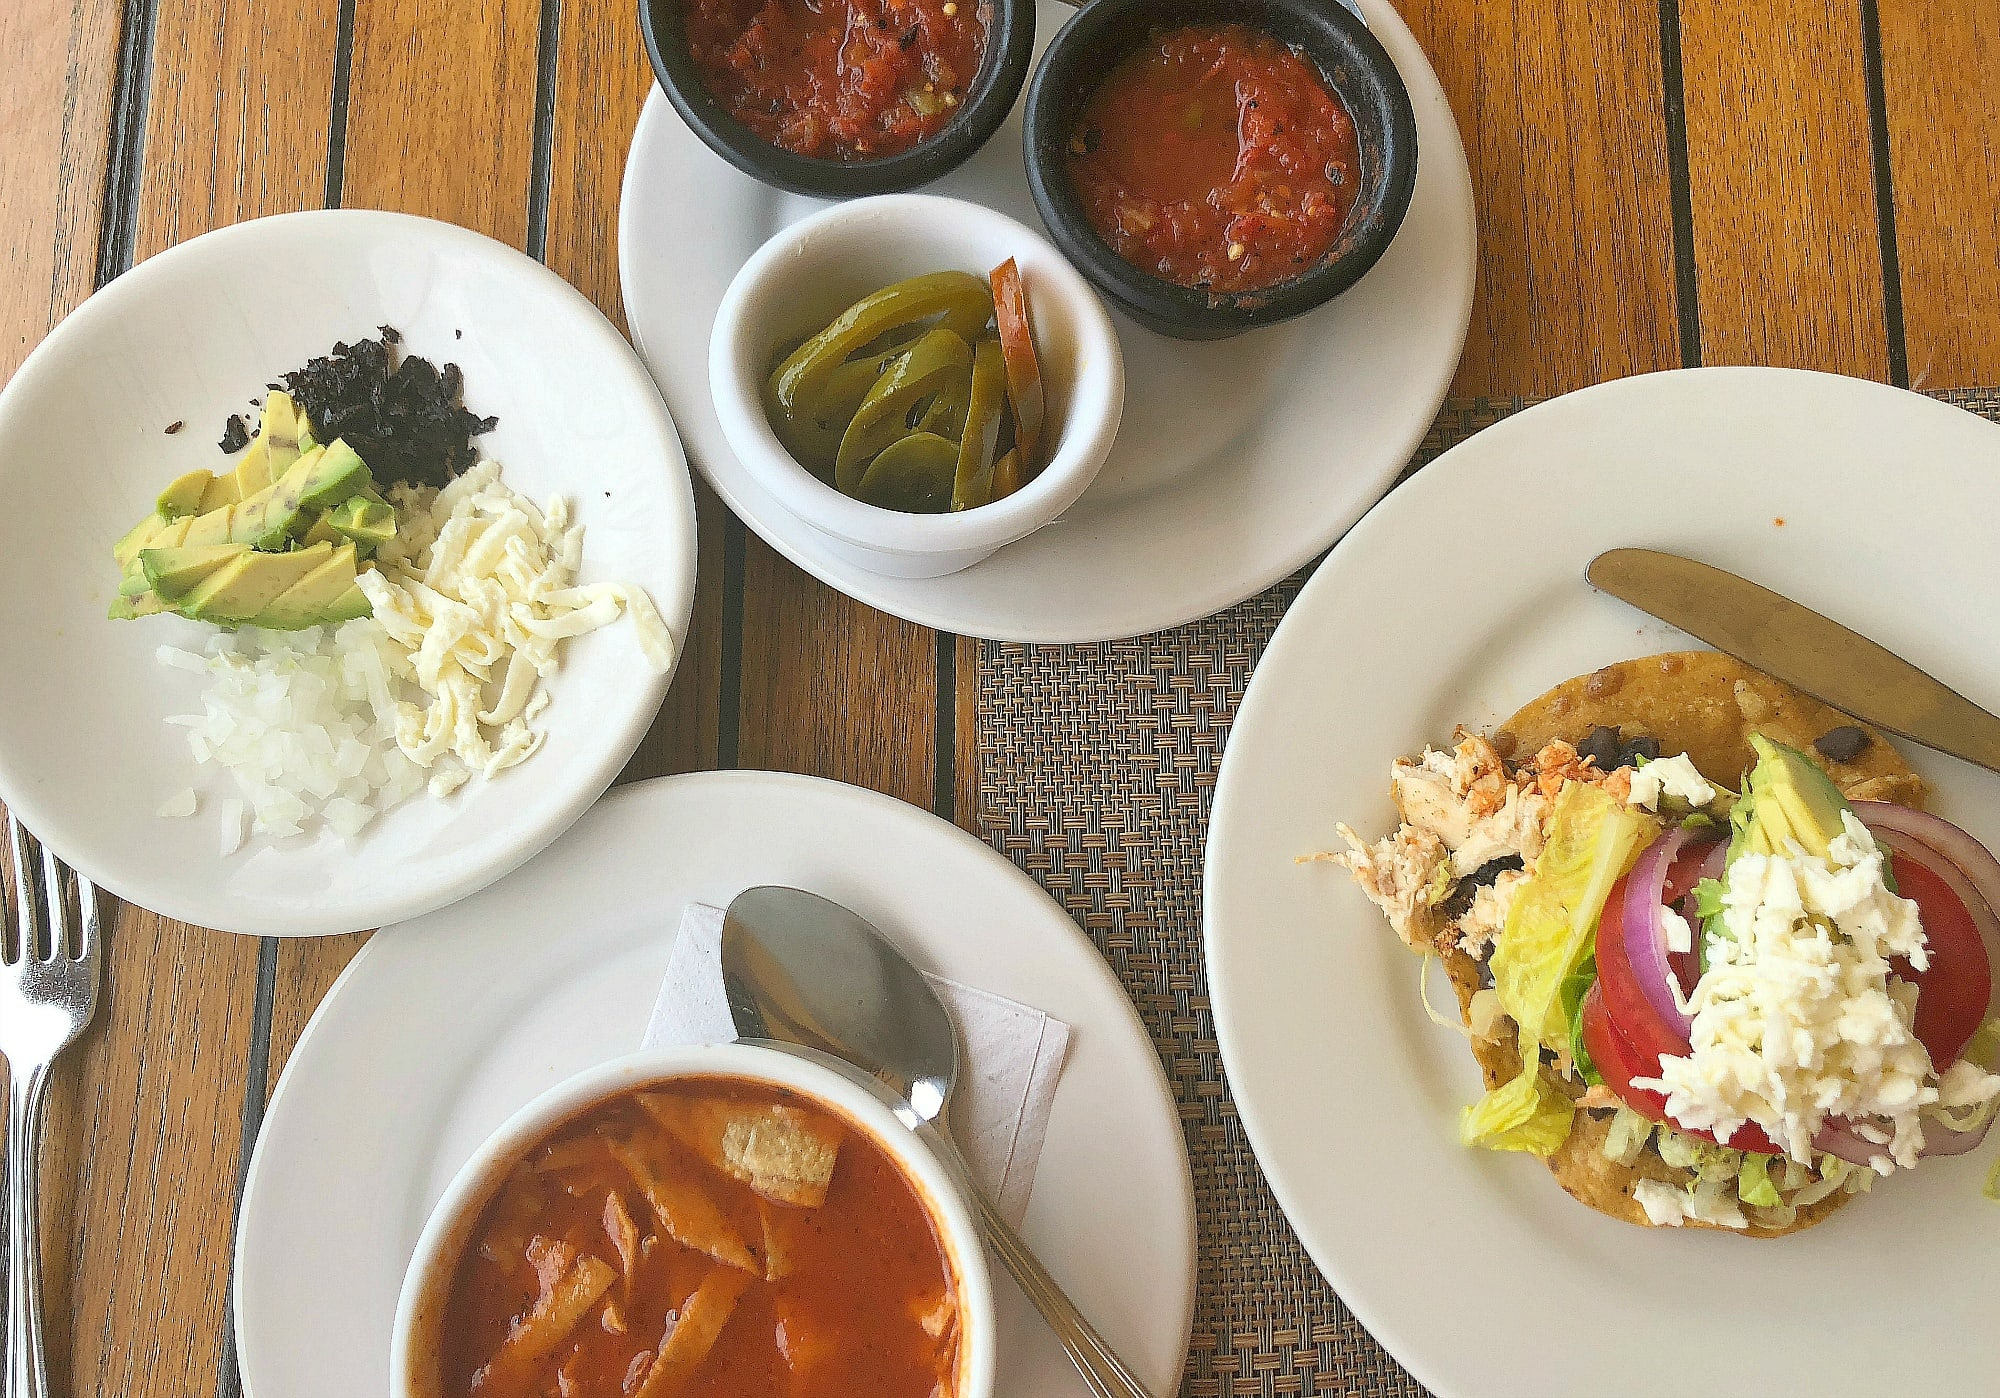 Azteca (tortilla) soup with all the fixings plus a chicken tostada at El Pegaso